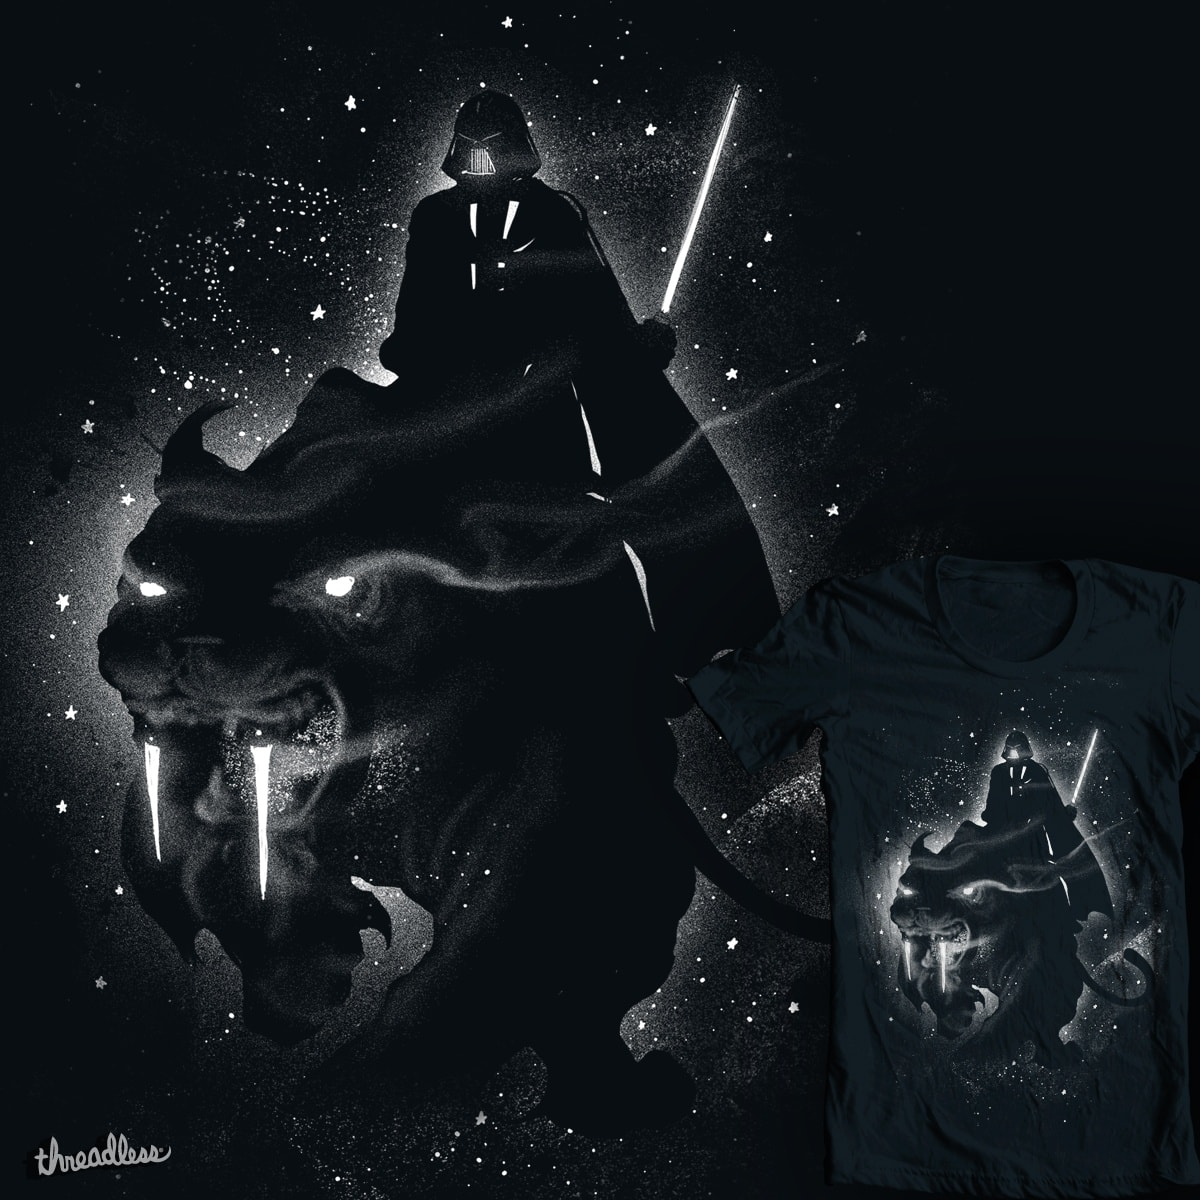 Saber Toothed Tiger by tobiasfonseca and GUTO_SZA on Threadless